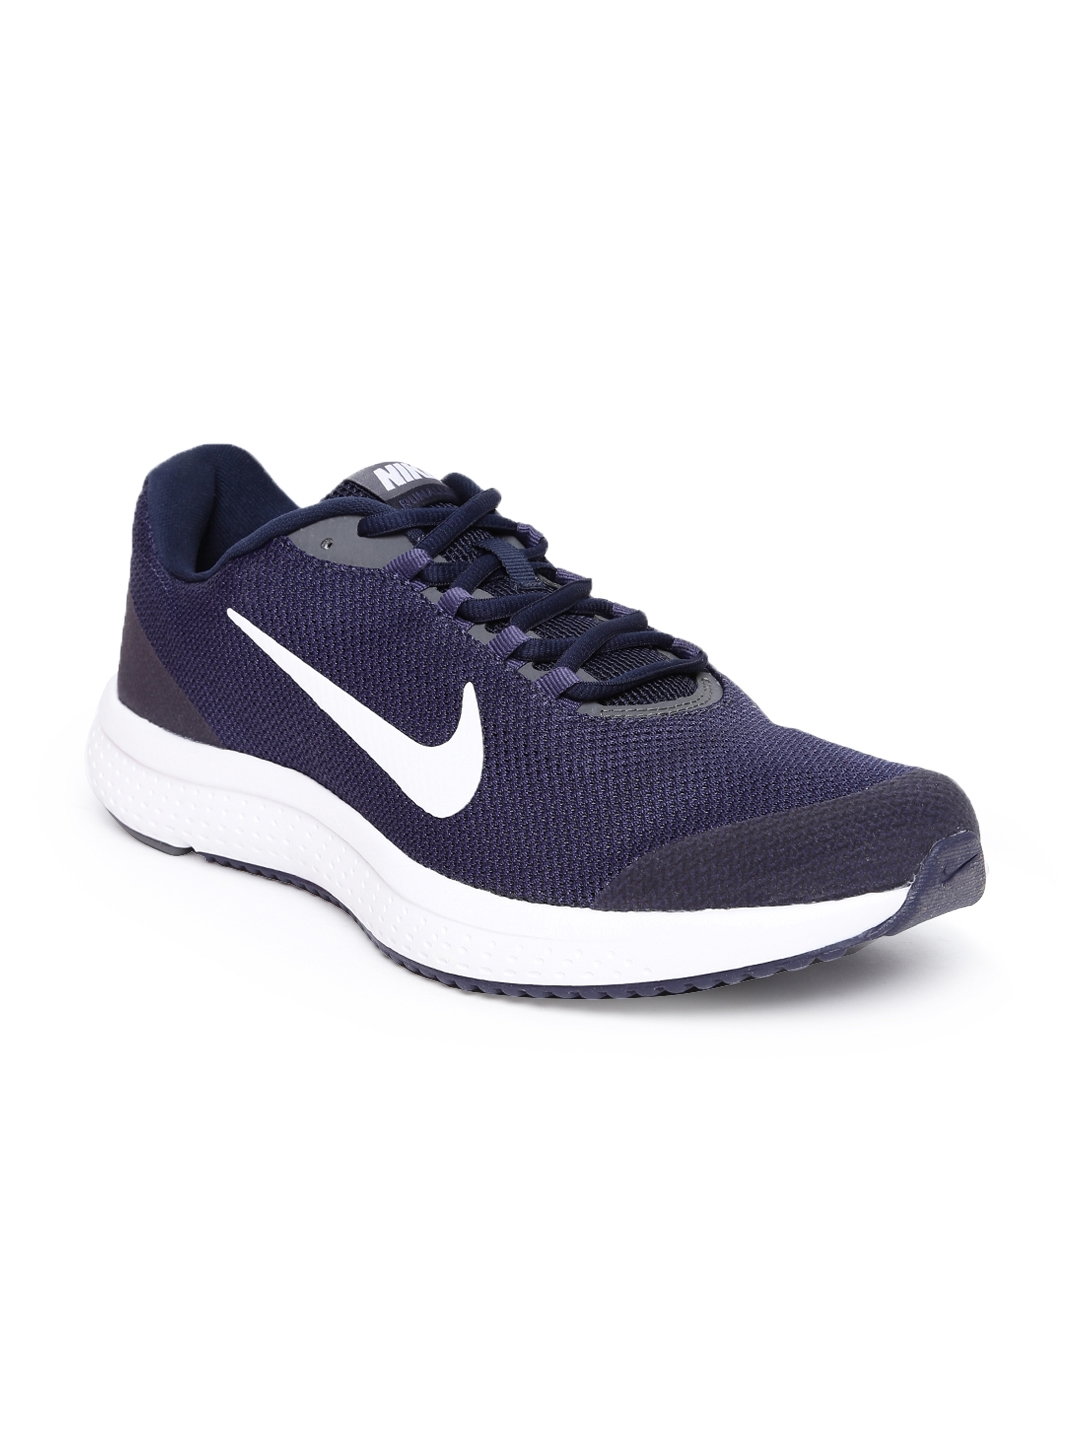 6dc7c5d64cdb Buy Nike Men Navy Blue RUNALLDAY Running Shoes - Sports Shoes for ...